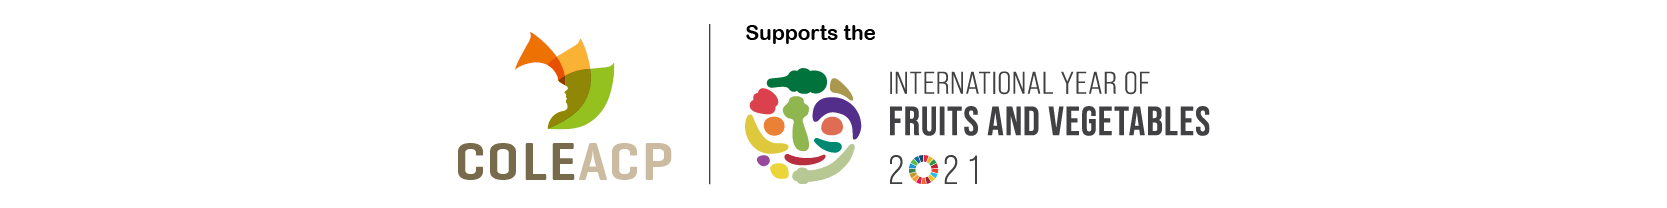 2021- International Year of Fruits and Vegetables